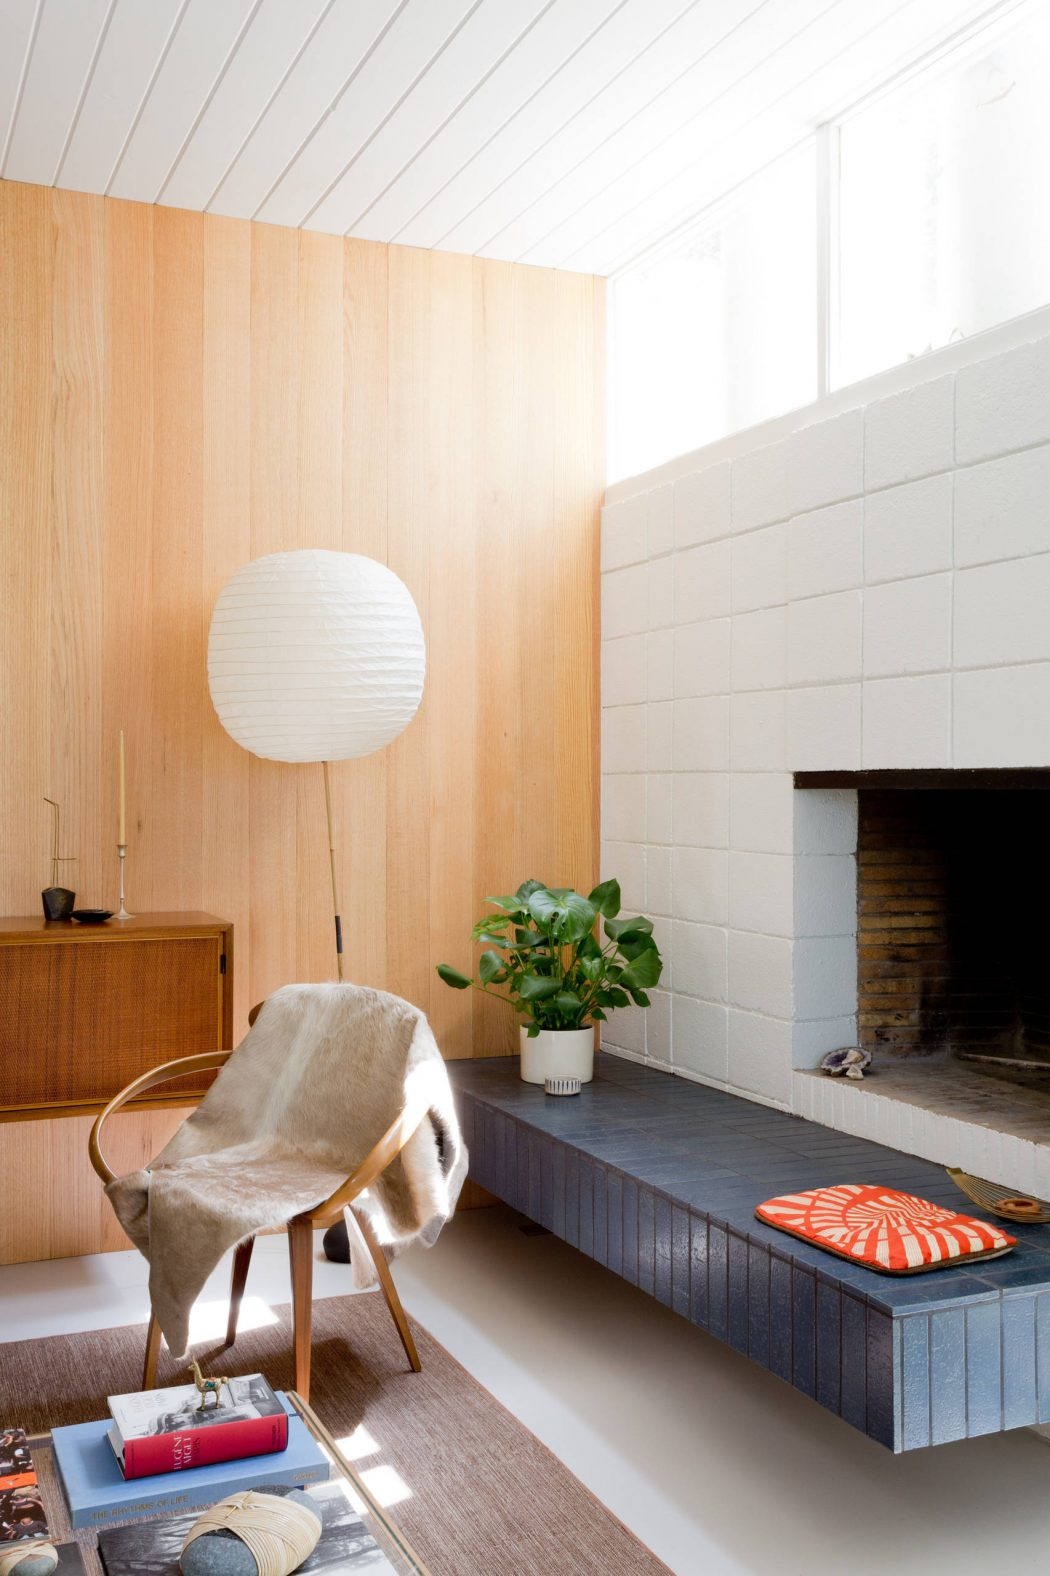 017-pacific-palisades-remodel-natalie-myers-1050x1576 Palisades Dc Green Remodeling Home on green home building materials, green home decor, green home crafts, green home foundations, green real estate, green finance, green home construction, green contact, green home siding, green home heating, green home design, green apartments, green home doors, green home home, green gardening, green home architects, green home appliances, green plumbing, green home engineering, green home tools,